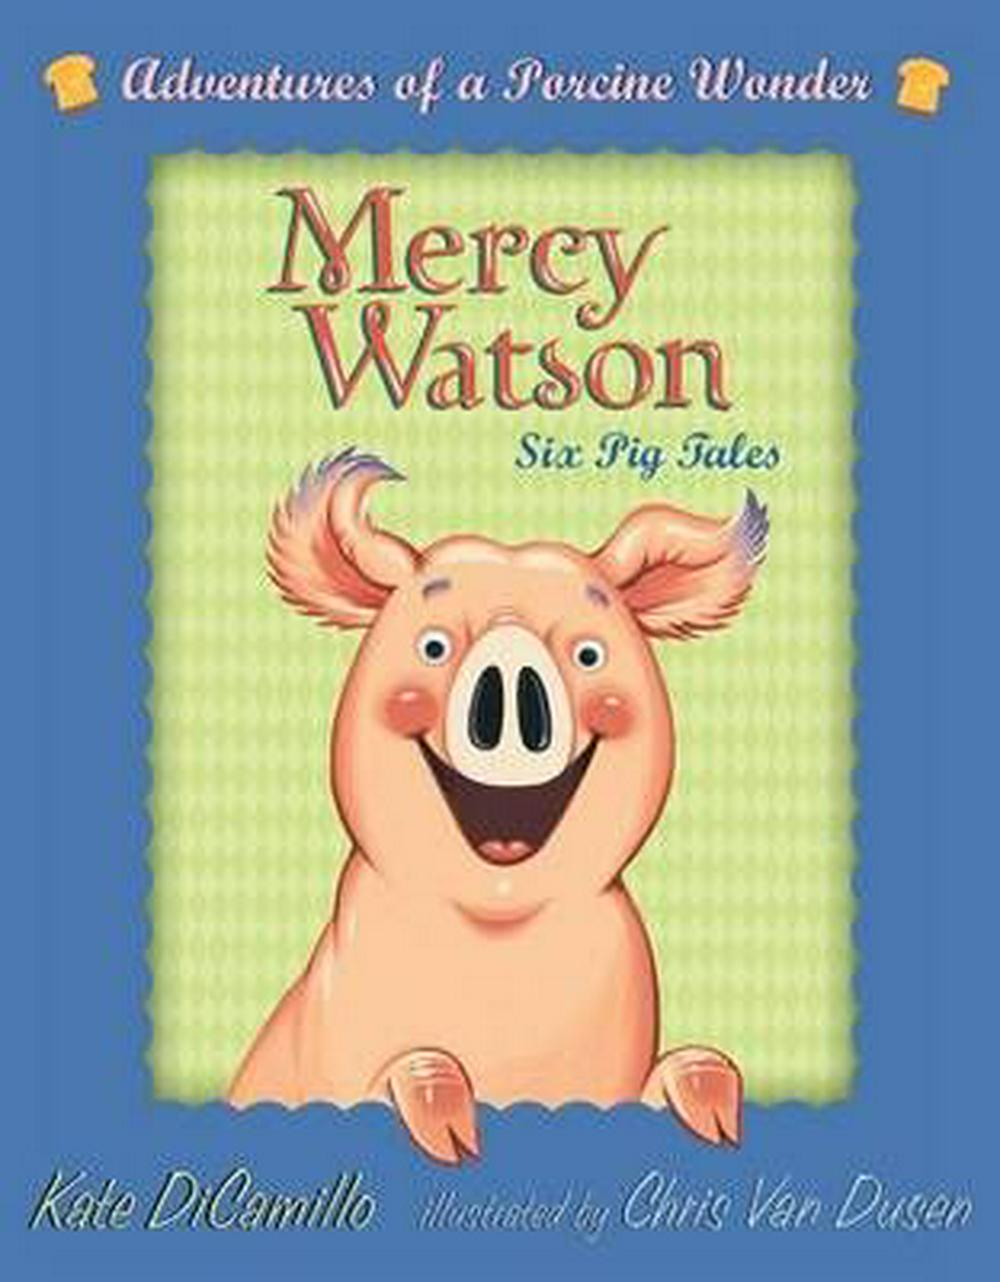 Mercy Watson Boxed Set: Adventures of a Porcine Wonder by Kate DiCamillo, ISBN: 9780763657093